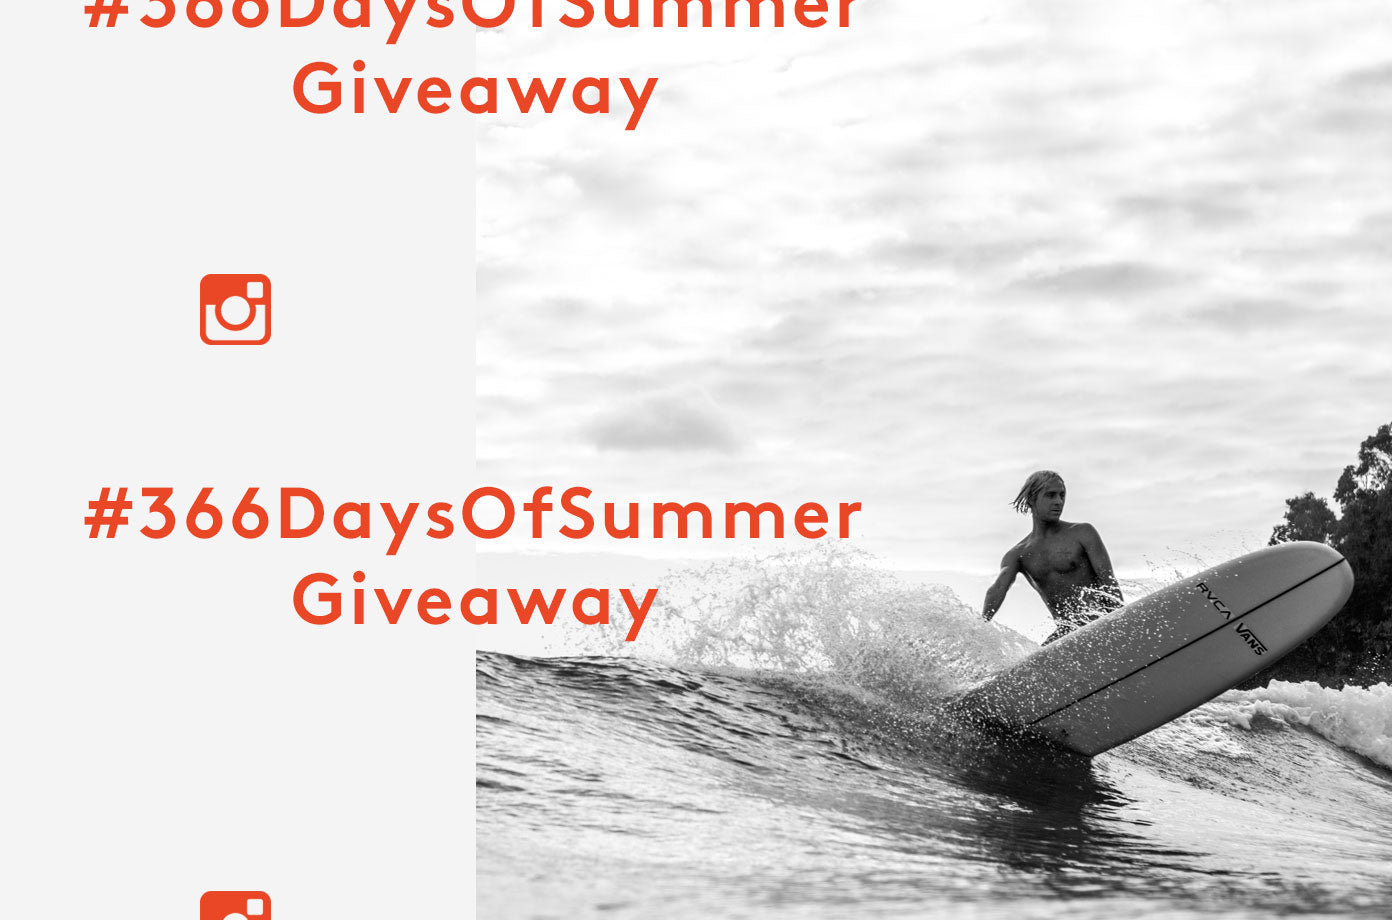 366 Days Of Summer Giveaway